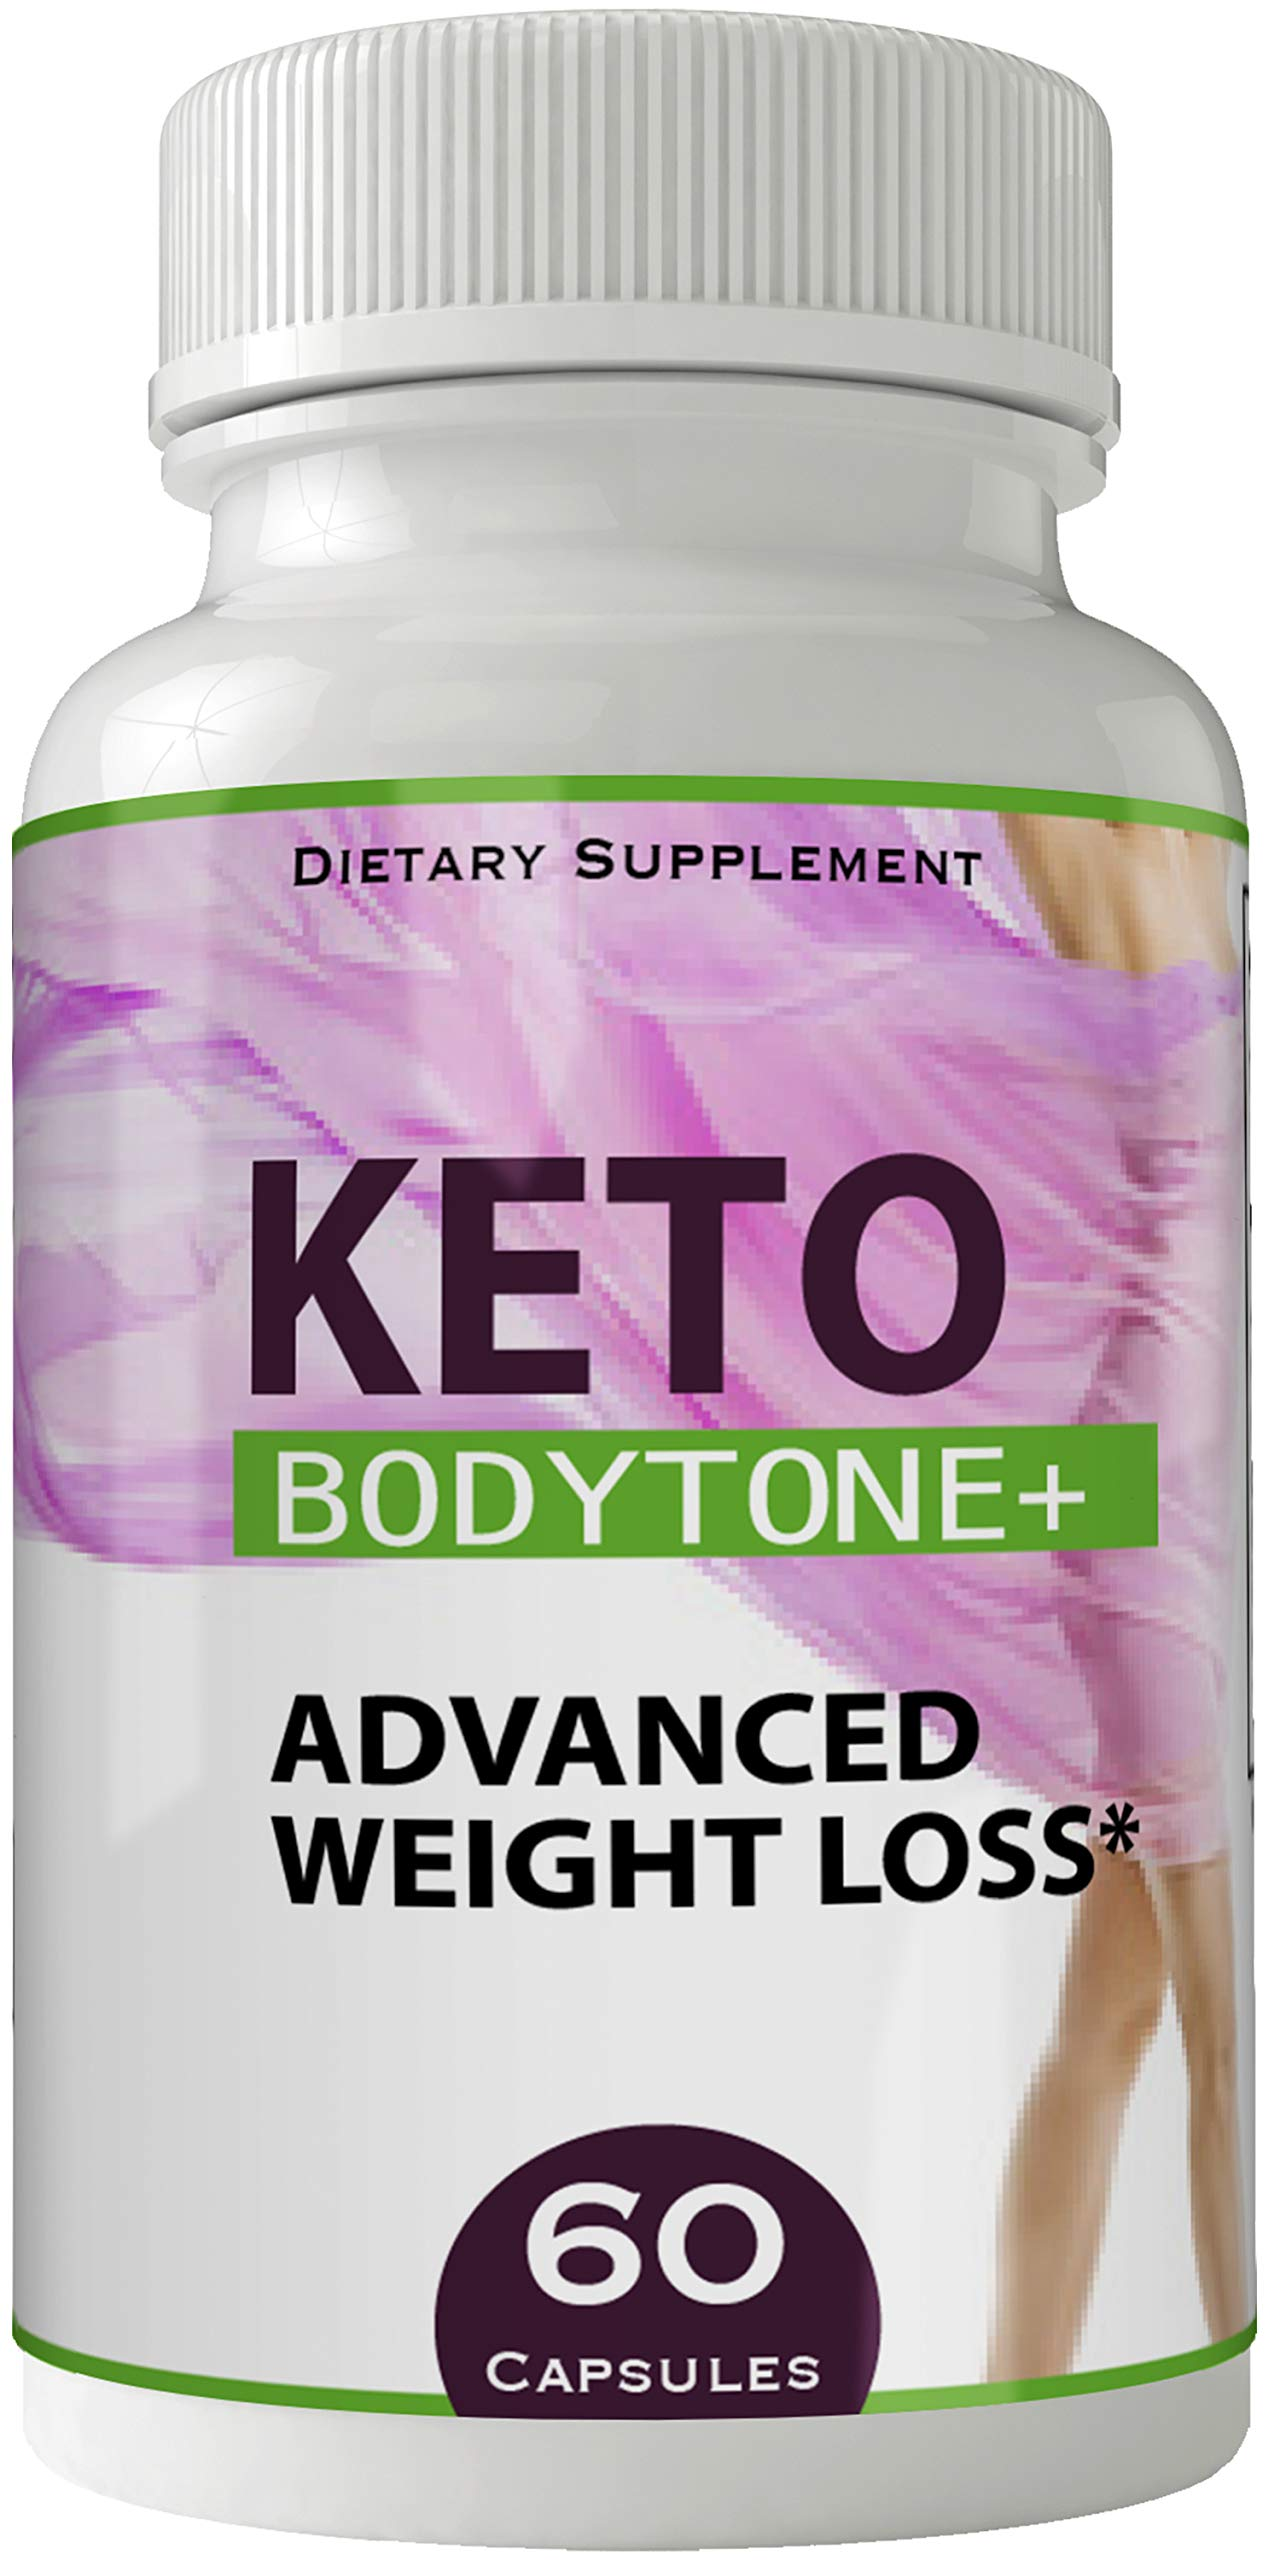 Keto Bodytone Plus Advanced Natural Ketogenic Body Tone Weight Loss Pills, BHB Burn Fat Supplement, 800 mg Formula with New True Slim GO BHB Salts Formula, Advanced Appetite Suppressant Capsules ... by nutra4health LLC